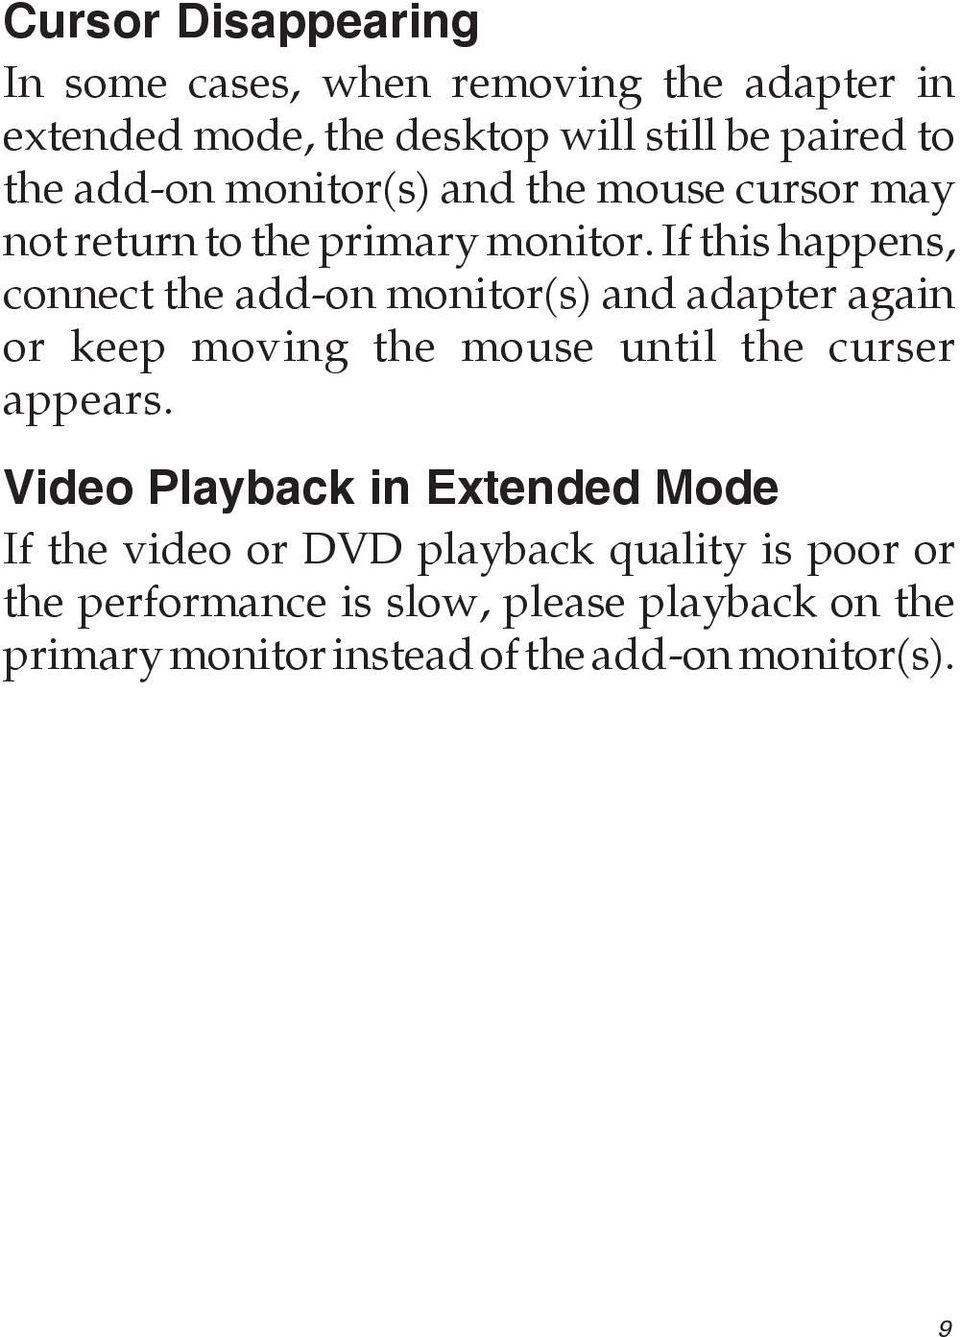 If this happens, connect the add-on monitor(s) and adapter again or keep moving the mouse until the curser appears.